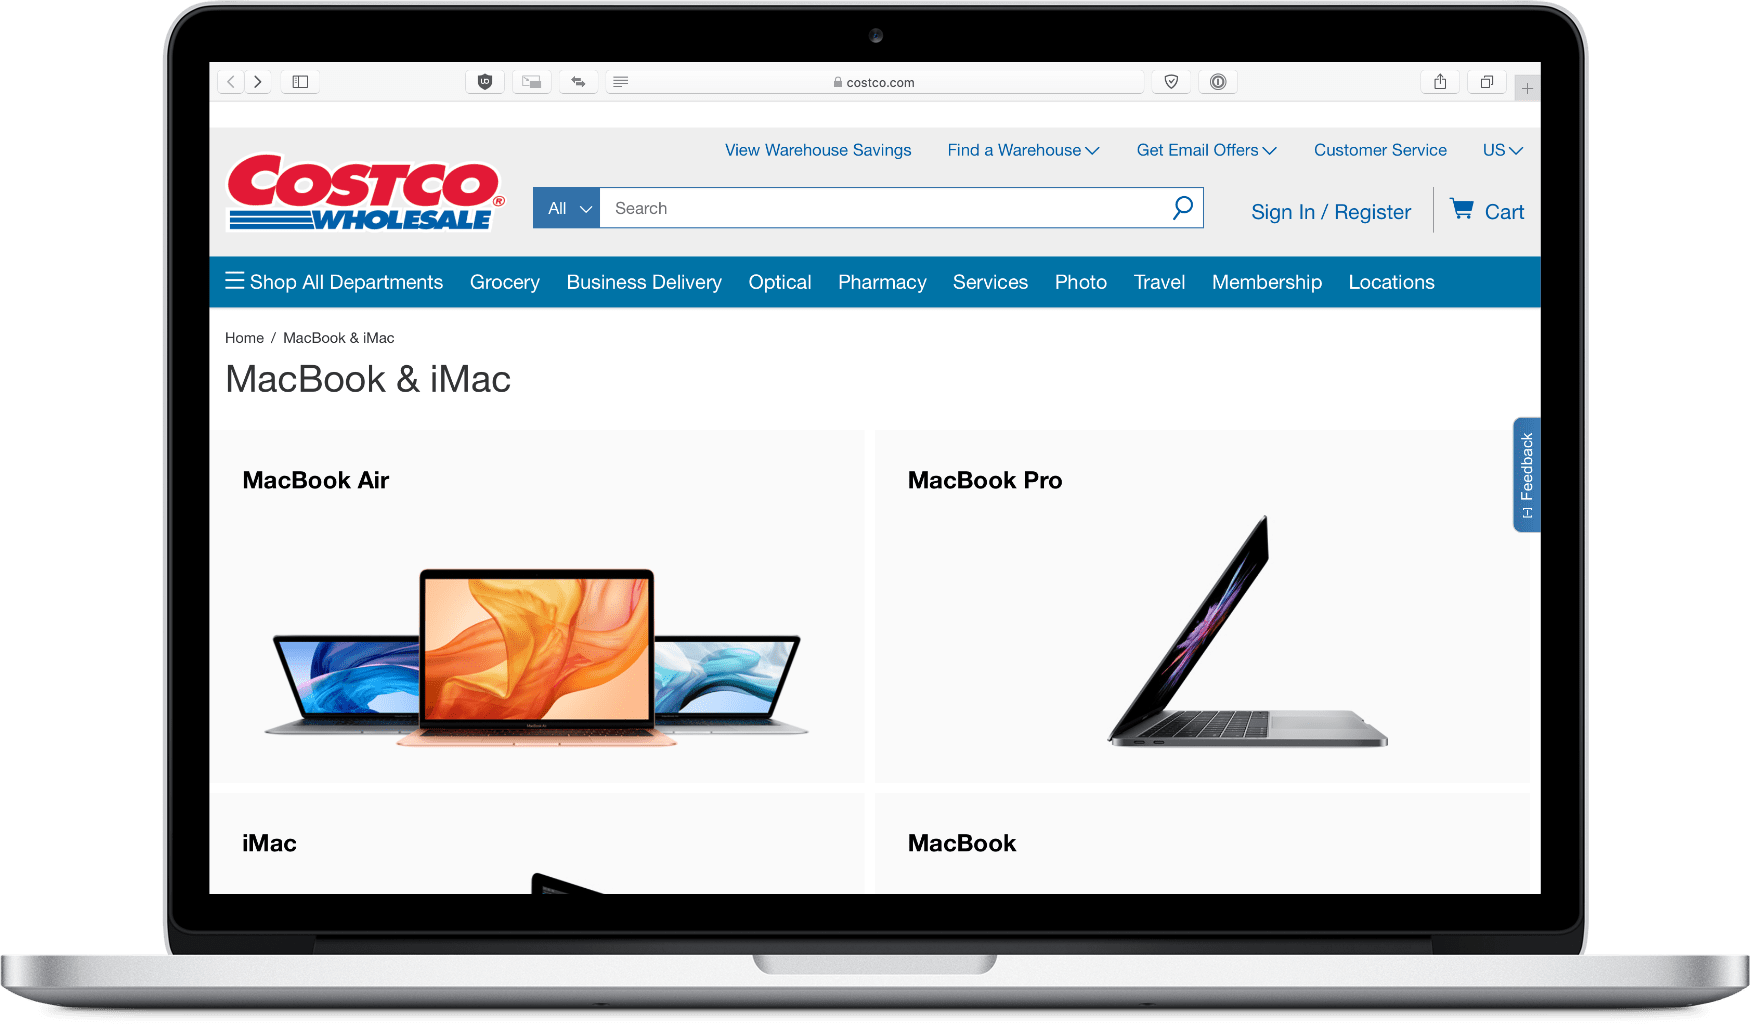 image of costco mac website